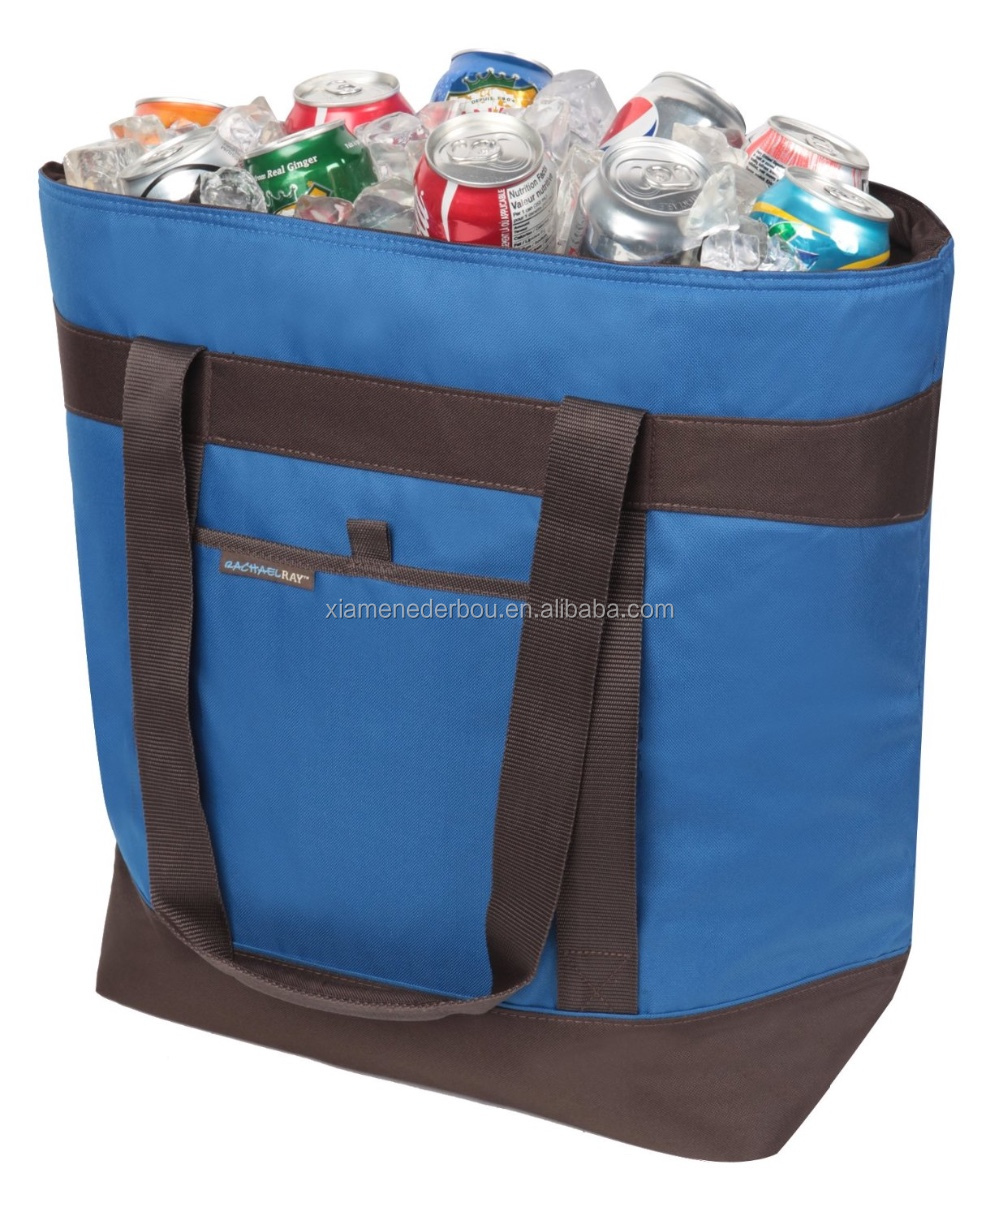 Rachael Ray Jumbo ChillOut Thermal Tote, Blue